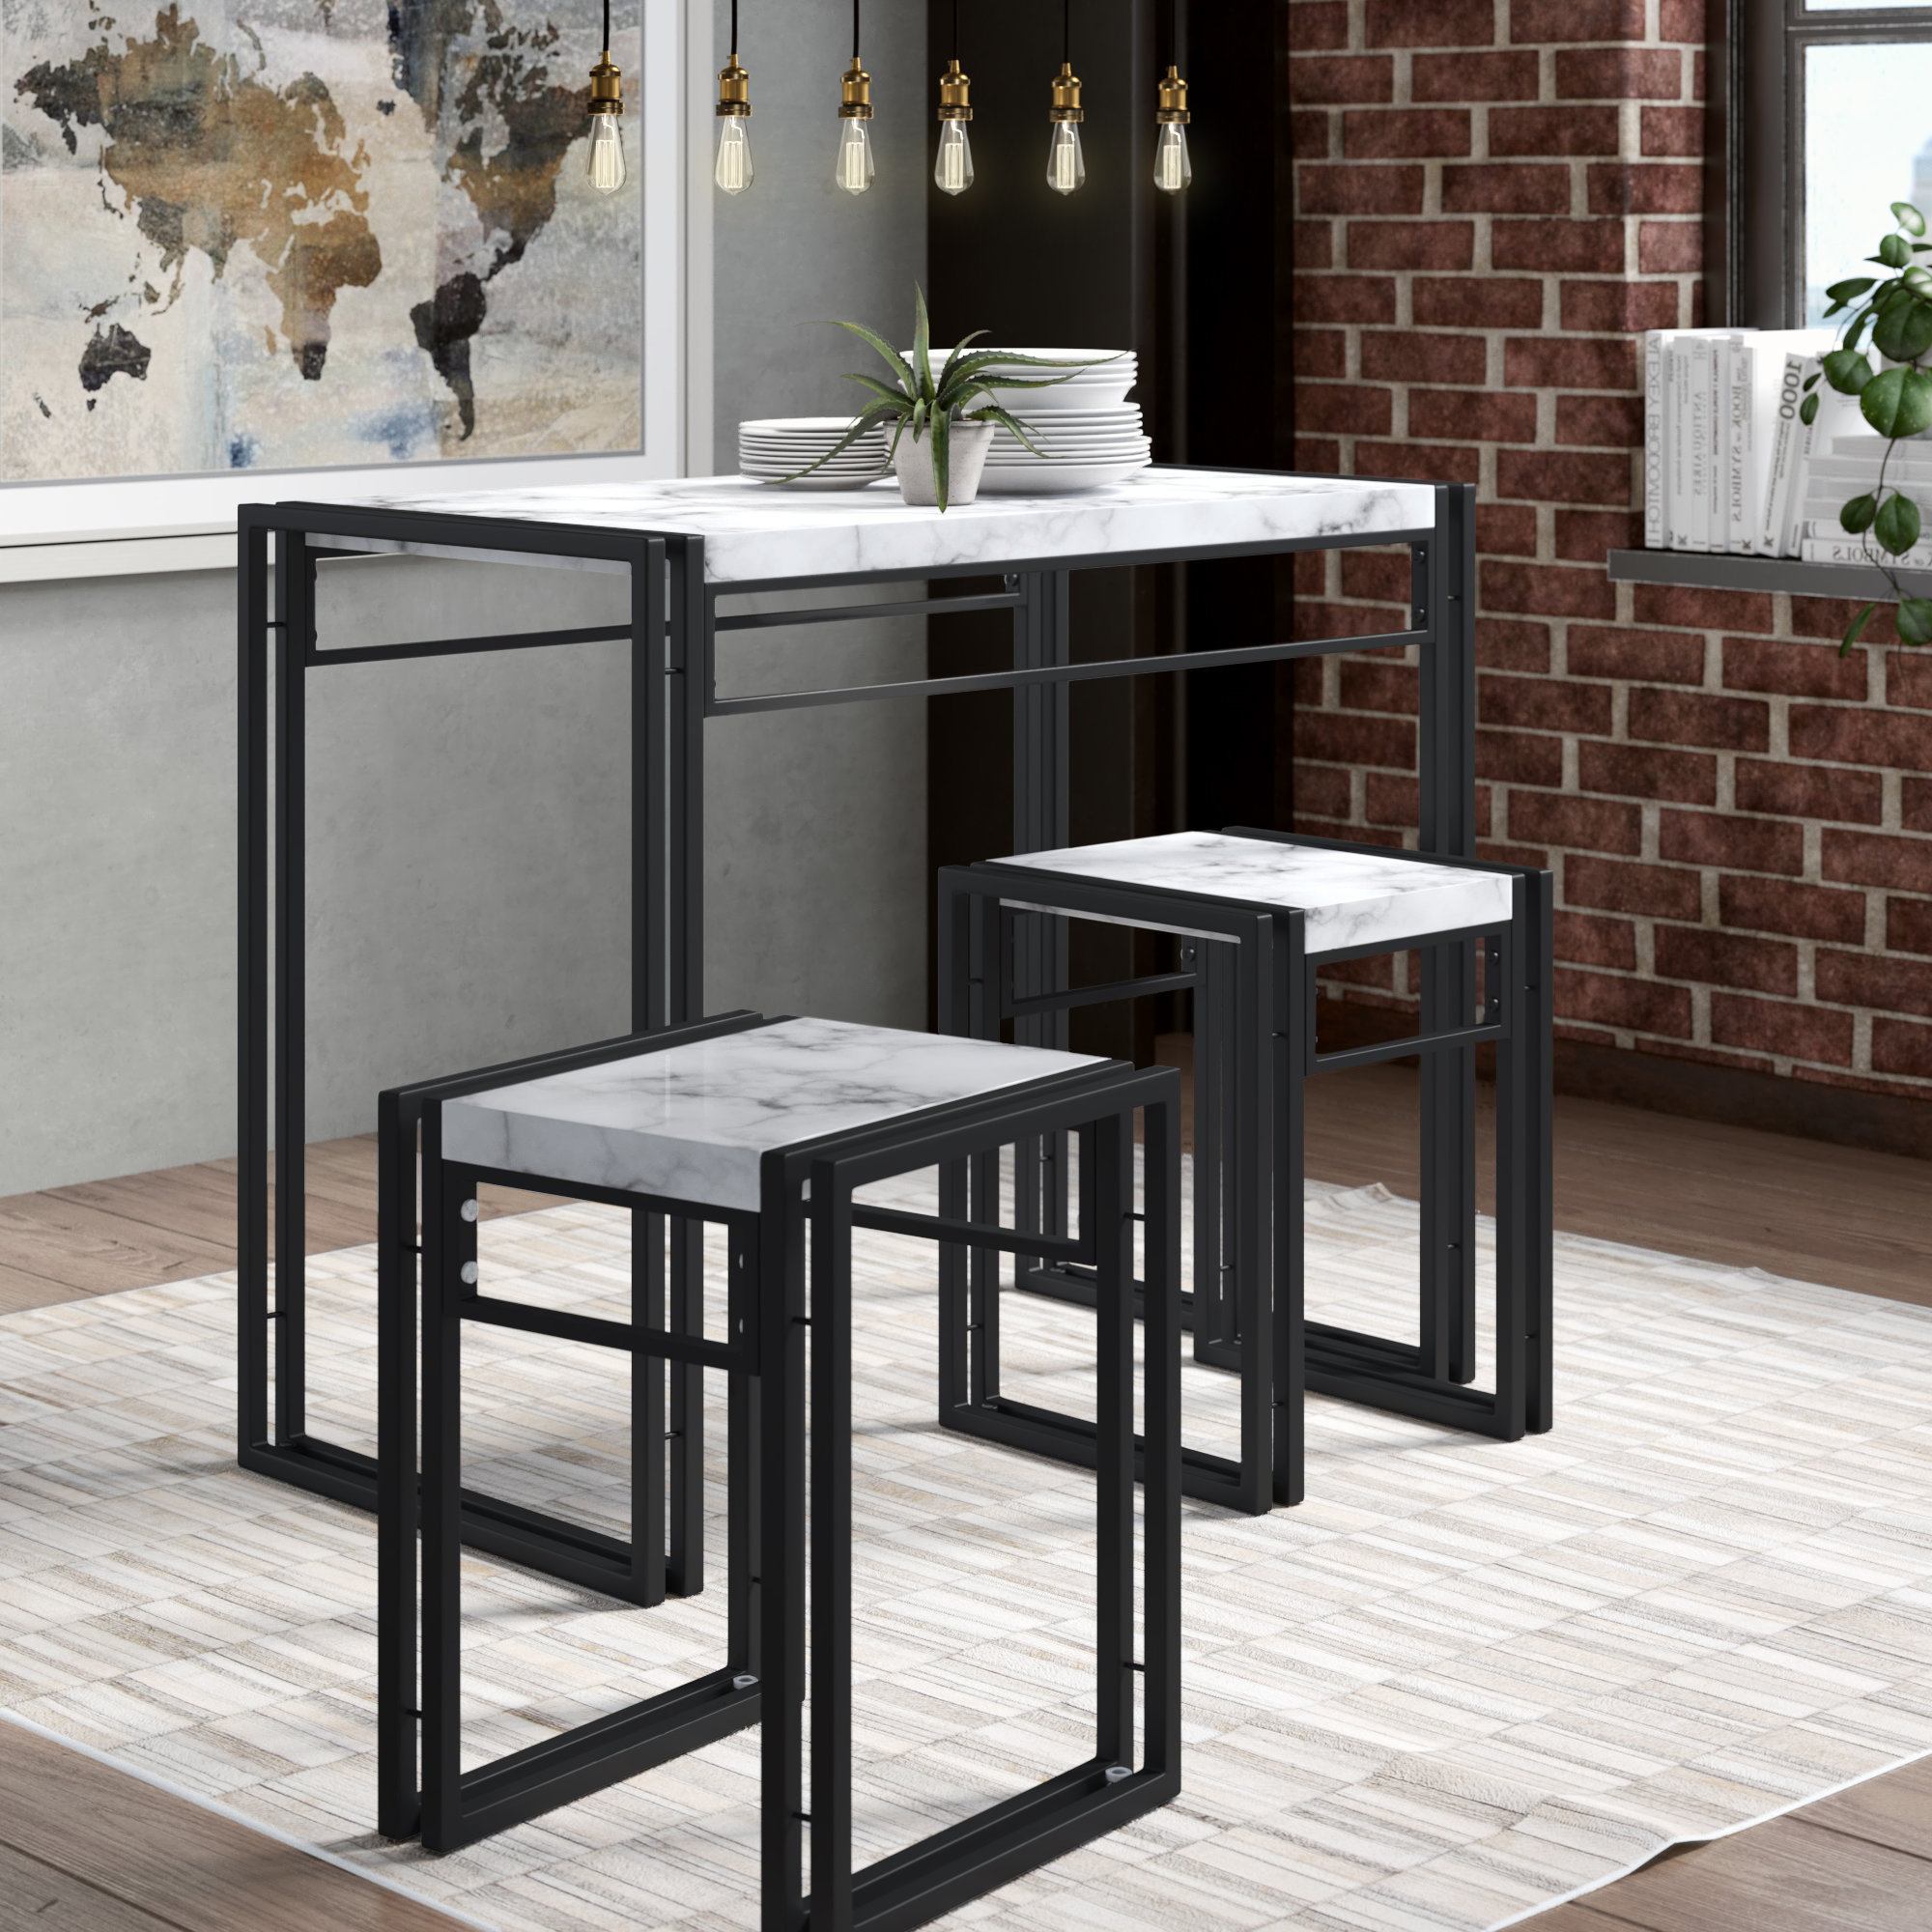 Fashionable Debby Small Space 3 Piece Dining Set Regarding Miskell 3 Piece Dining Sets (View 6 of 20)